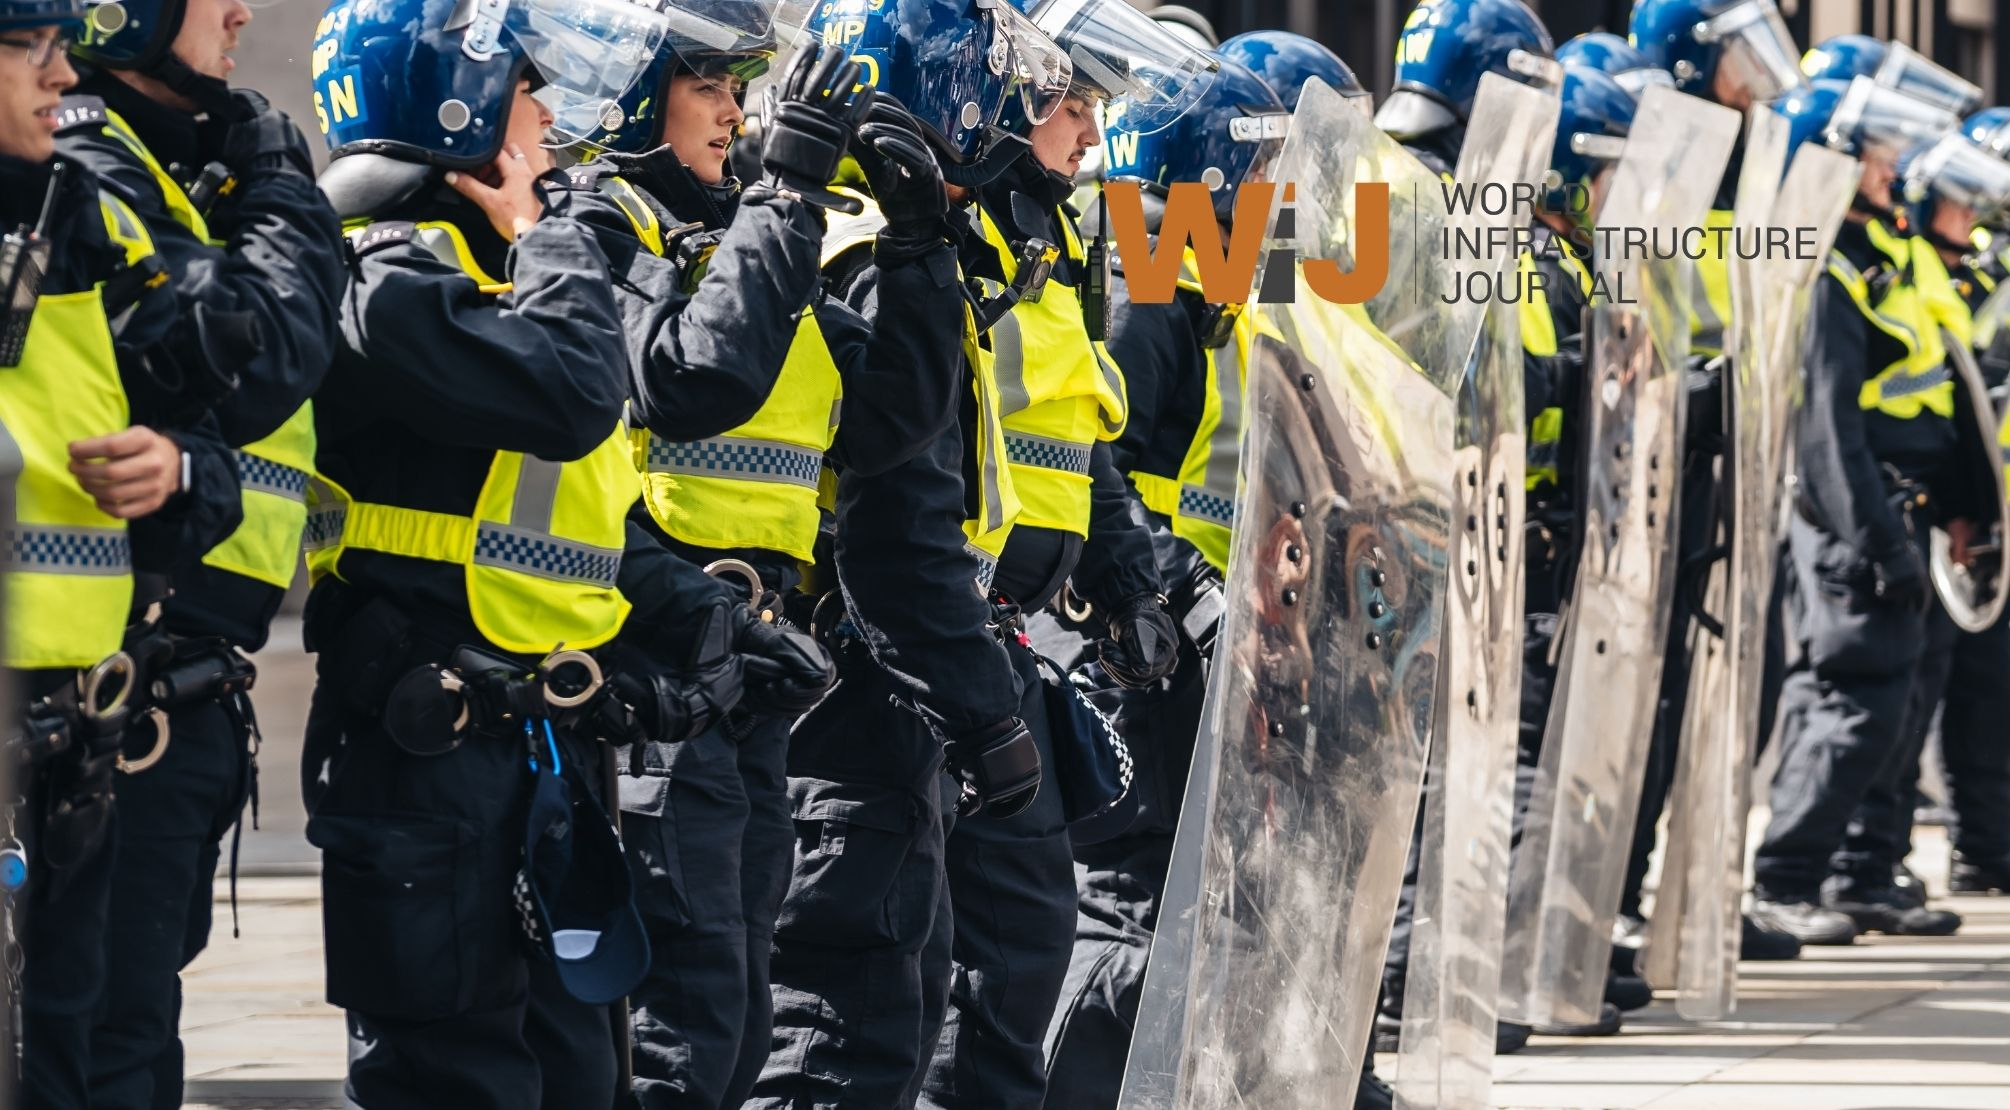 The problem isn't protestors, it's policymakers